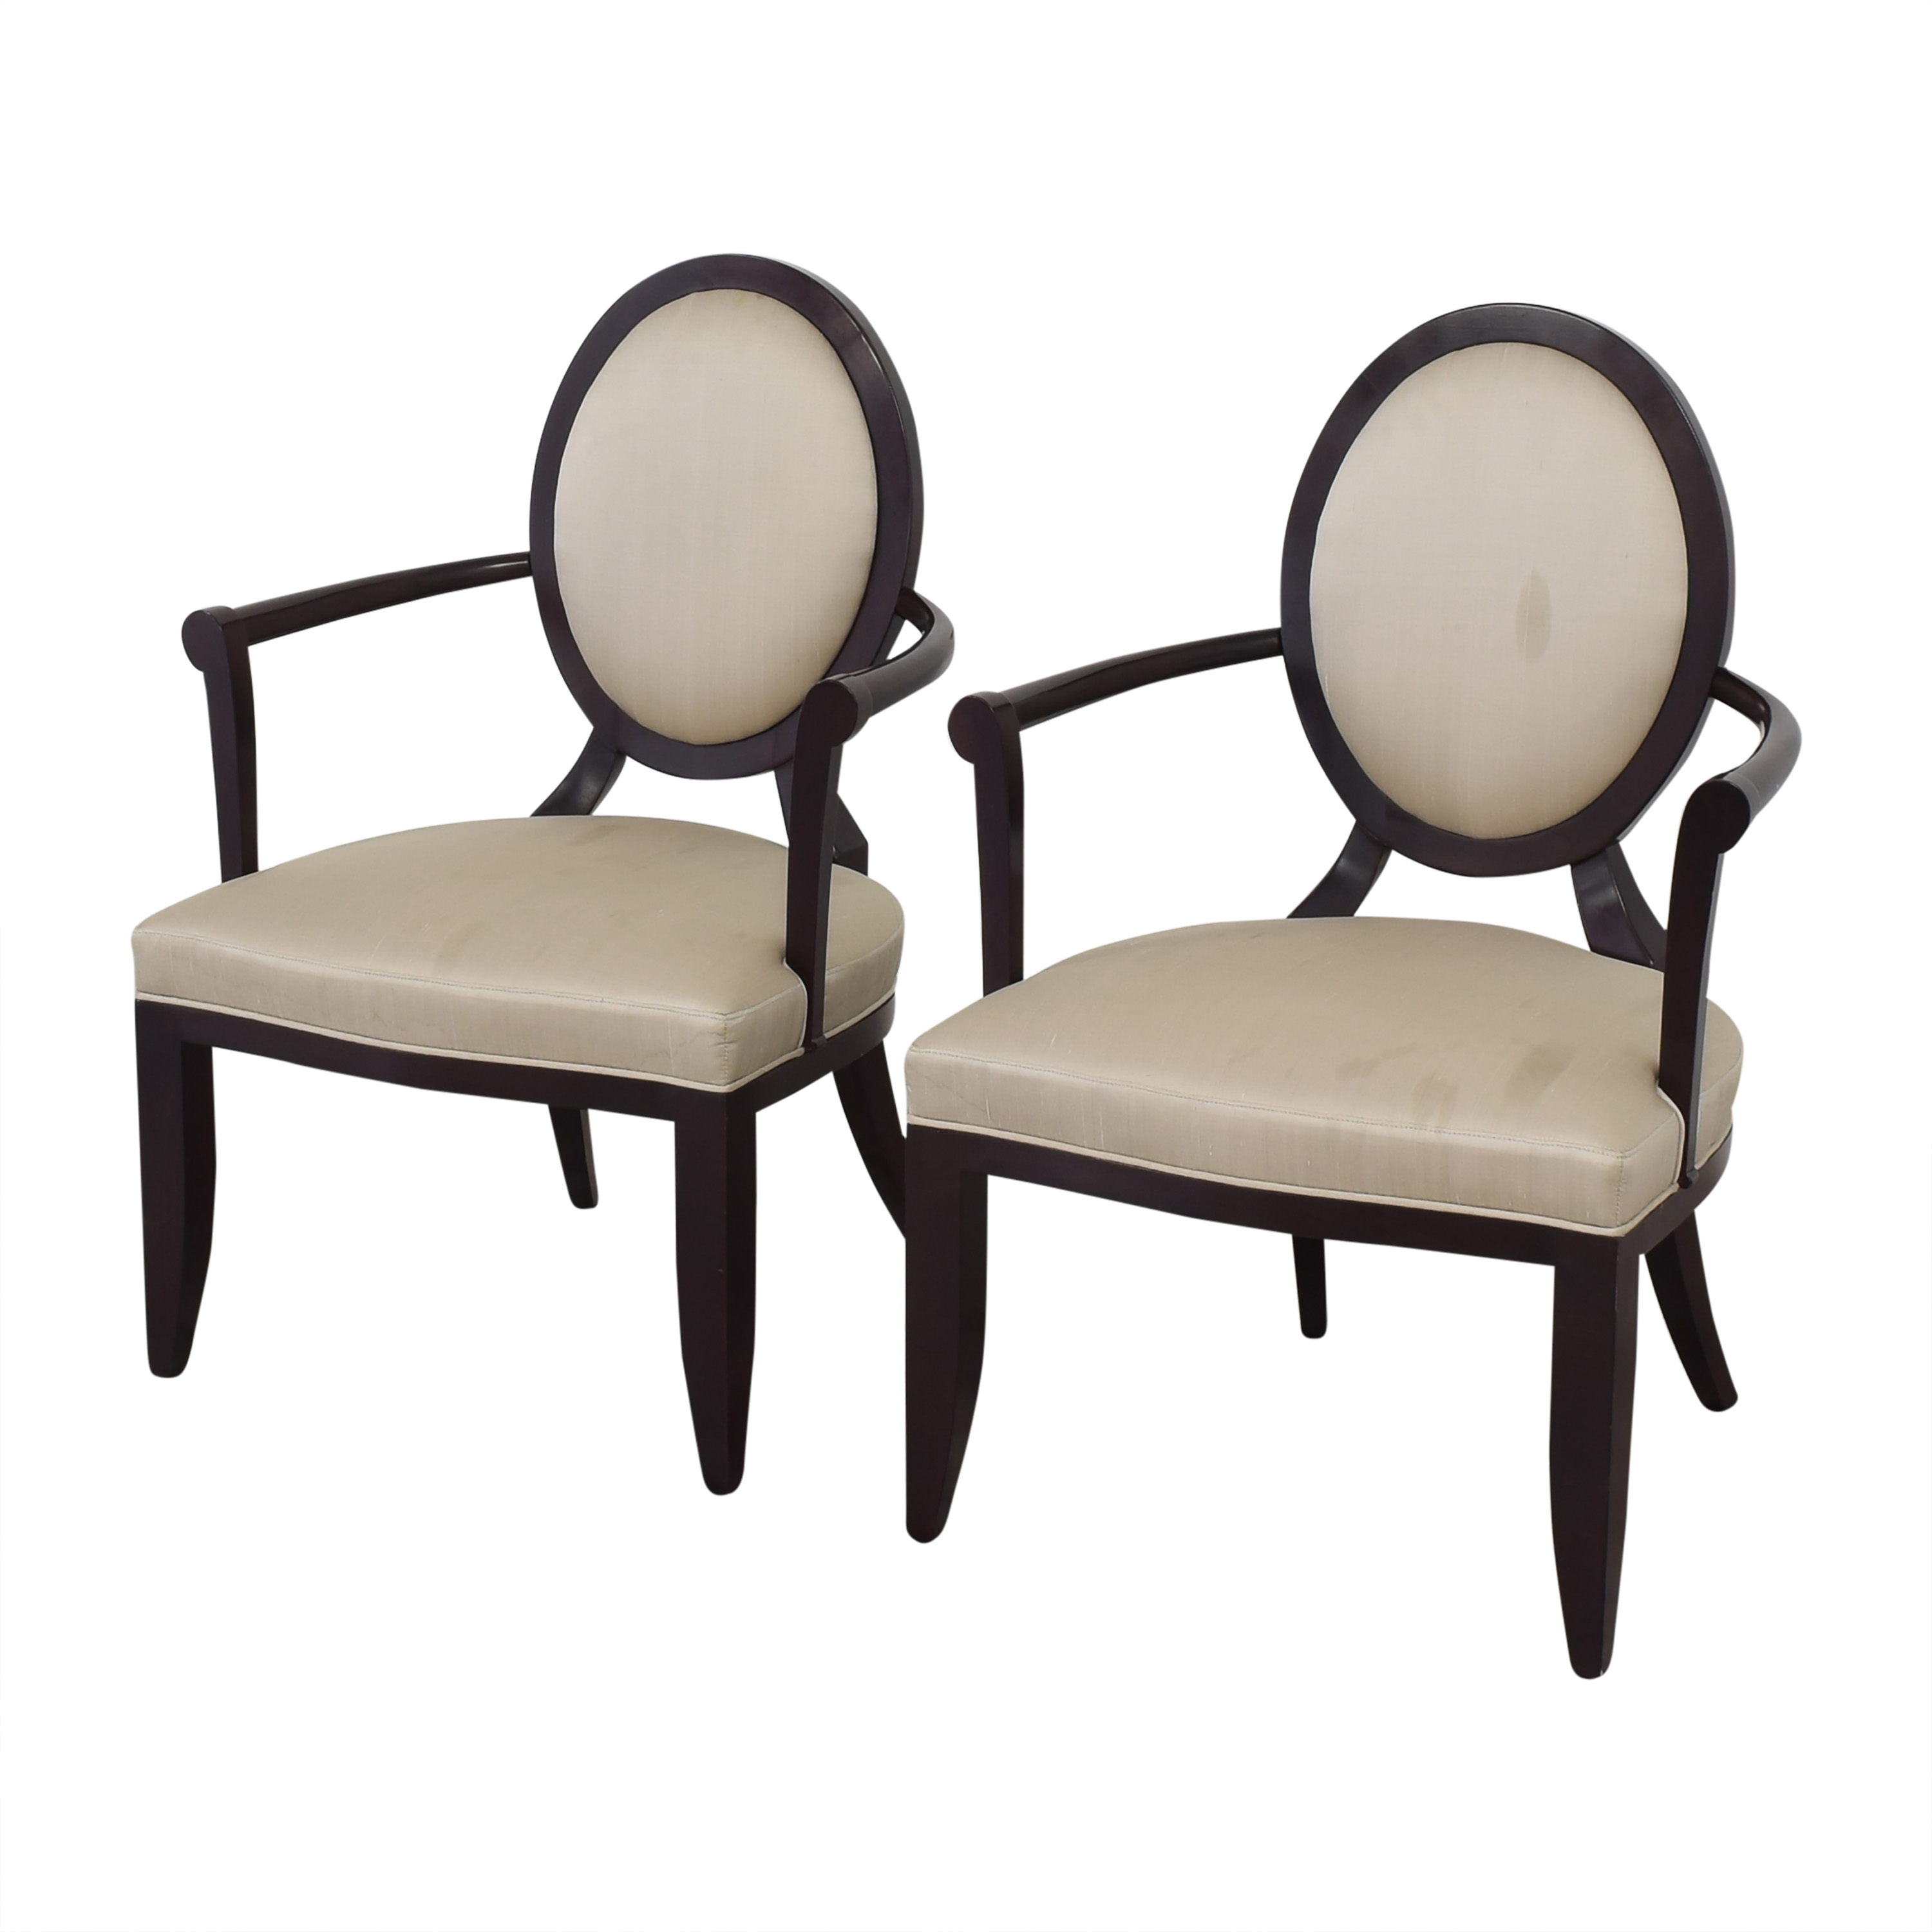 Baker Furniture Baker Furniture Oval X-Back Dining Arm Chairs used